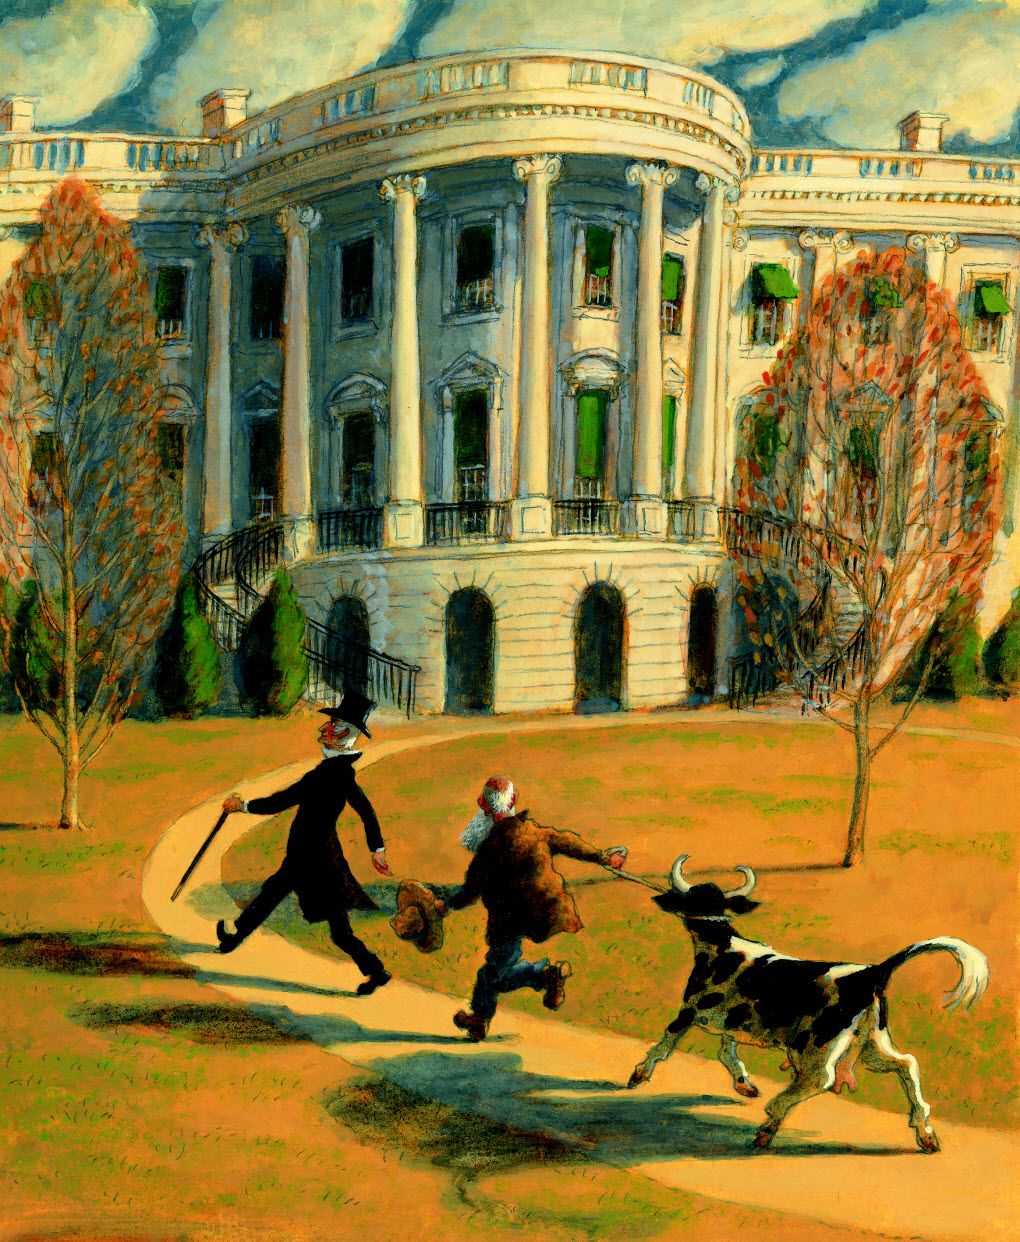 OUR WHITE HOUSE. Illustration © 2008 by Barry Root. Reproduced by permission of the publisher, Candlewick Press, Somerville, MA.